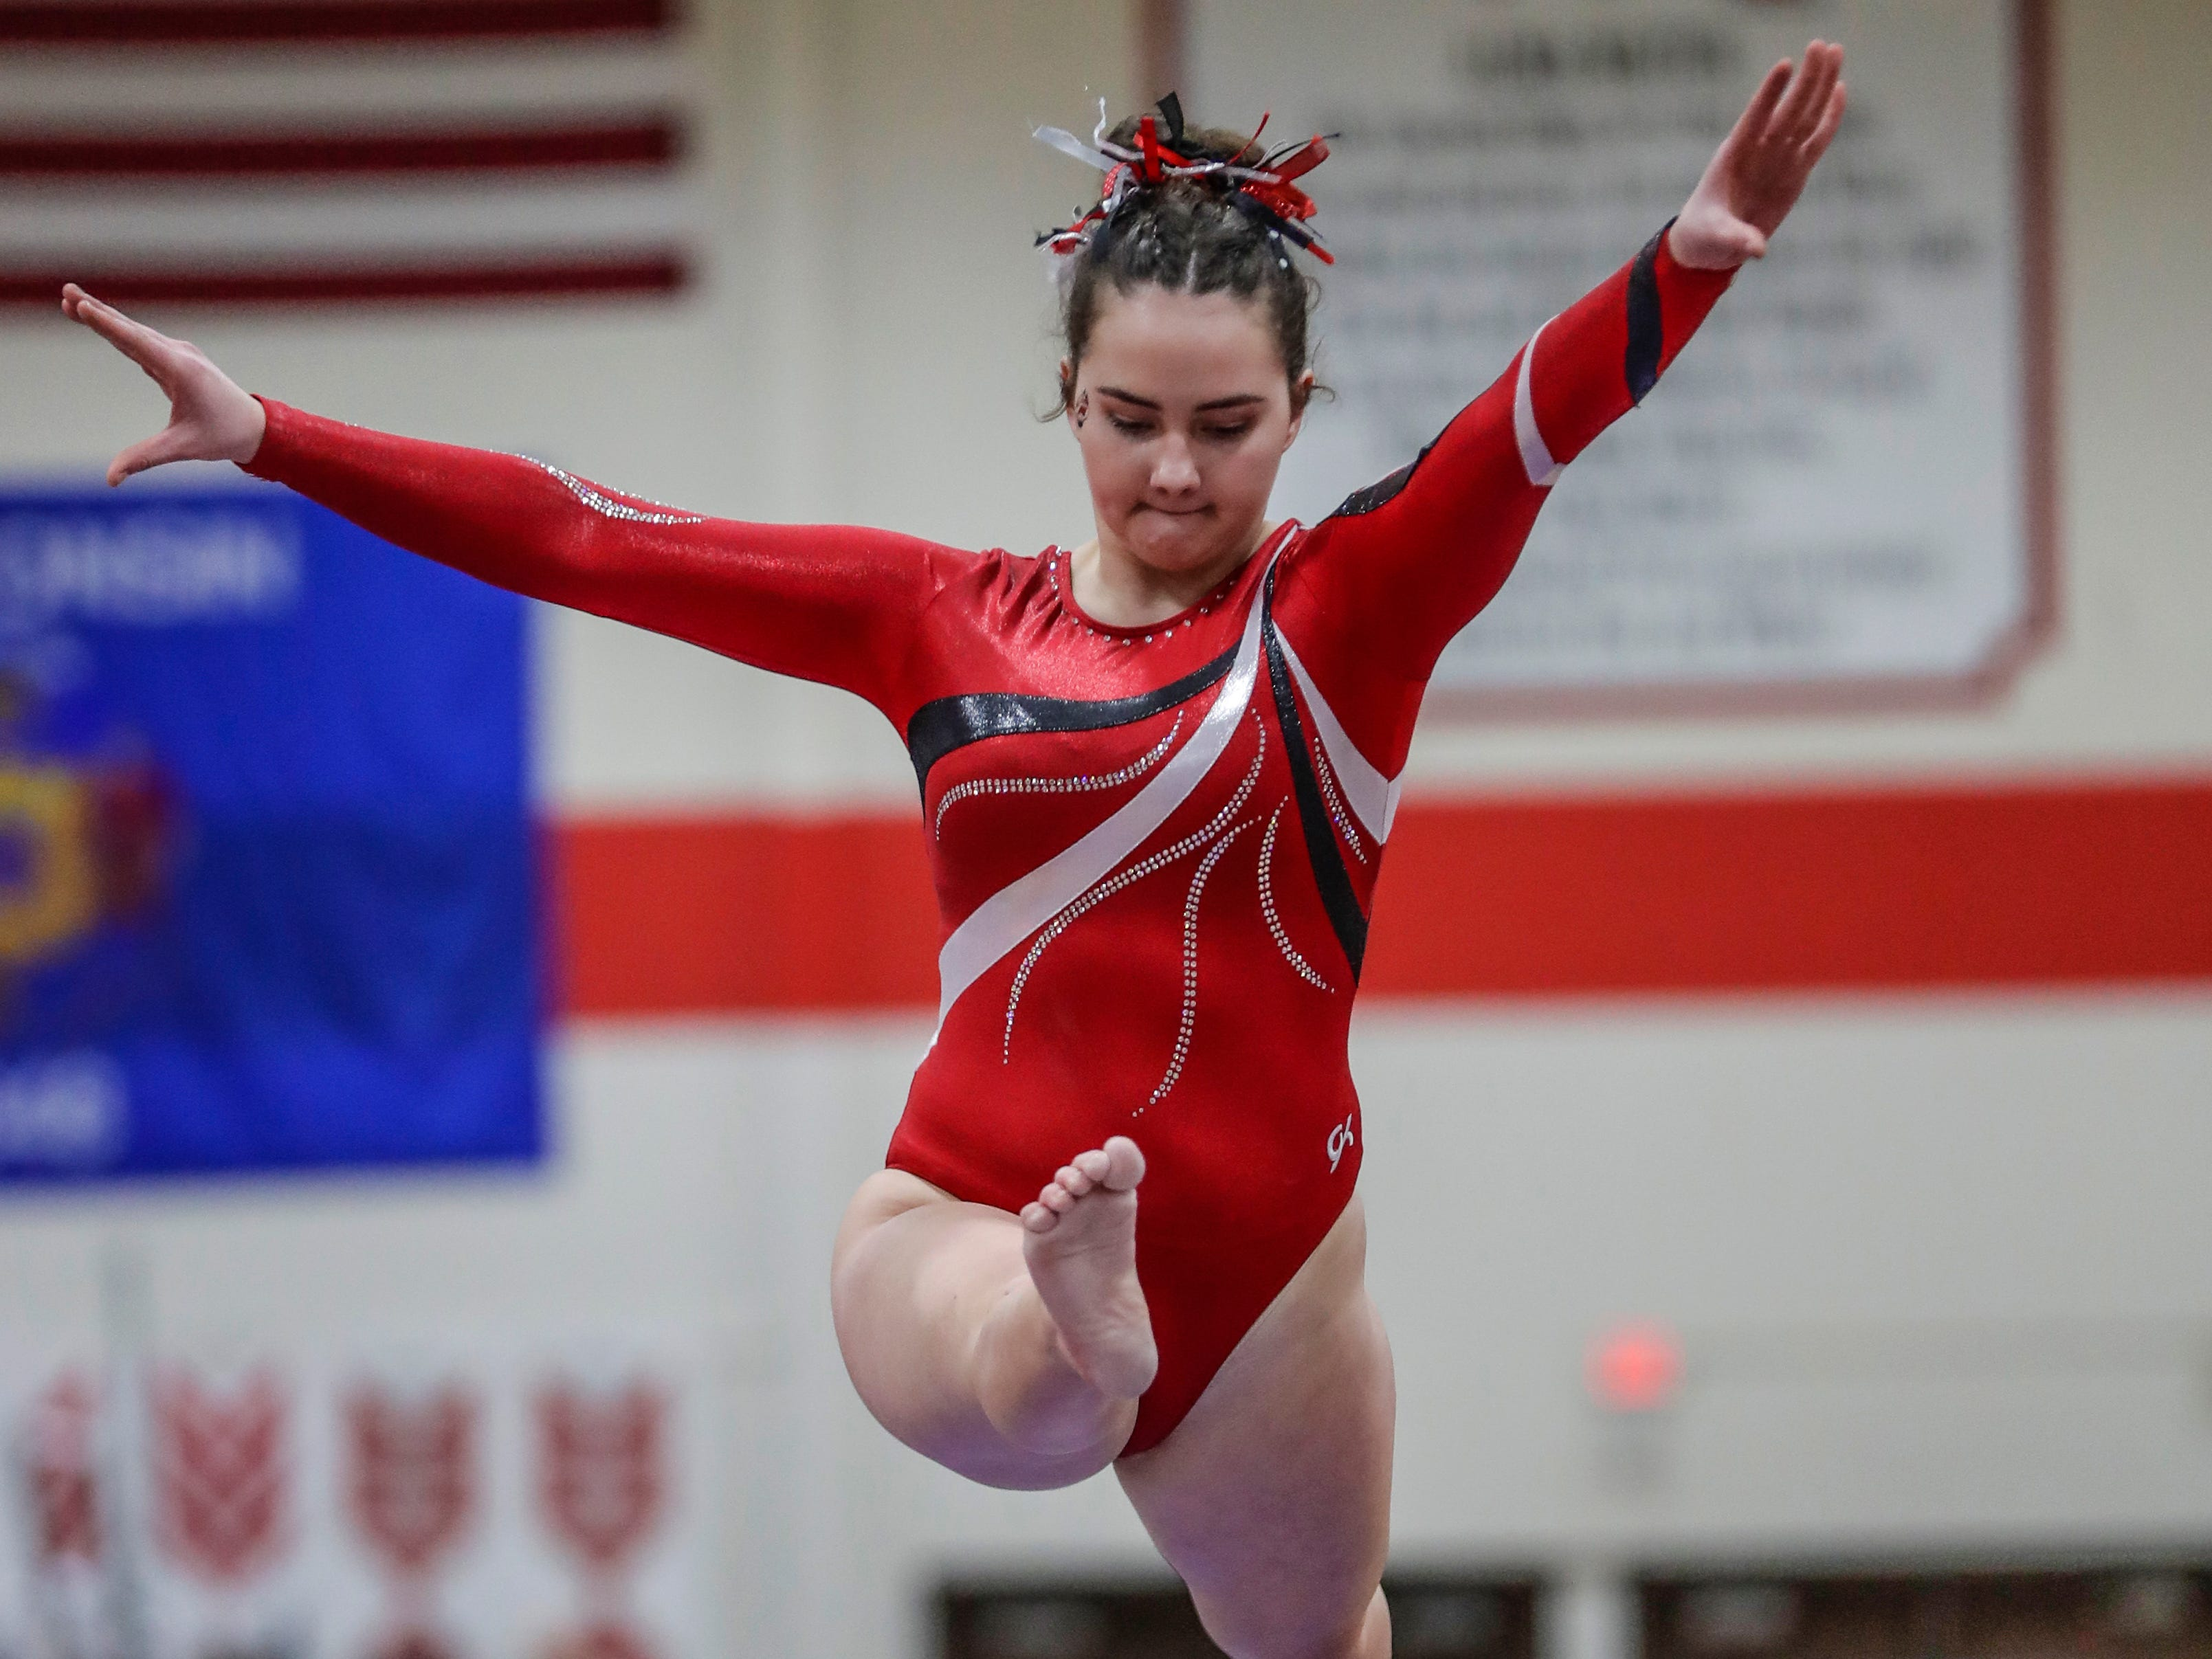 Manitowoc Lincoln's Courtney Youngchild competes on the balance beam in Division 1 during WIAA state gymnastics competition Friday, March 1, 2019, at Lincoln High School Field House in Wisconsin Rapids, Wis. T'xer Zhon Kha/USA TODAY NETWORK-Wisconsin